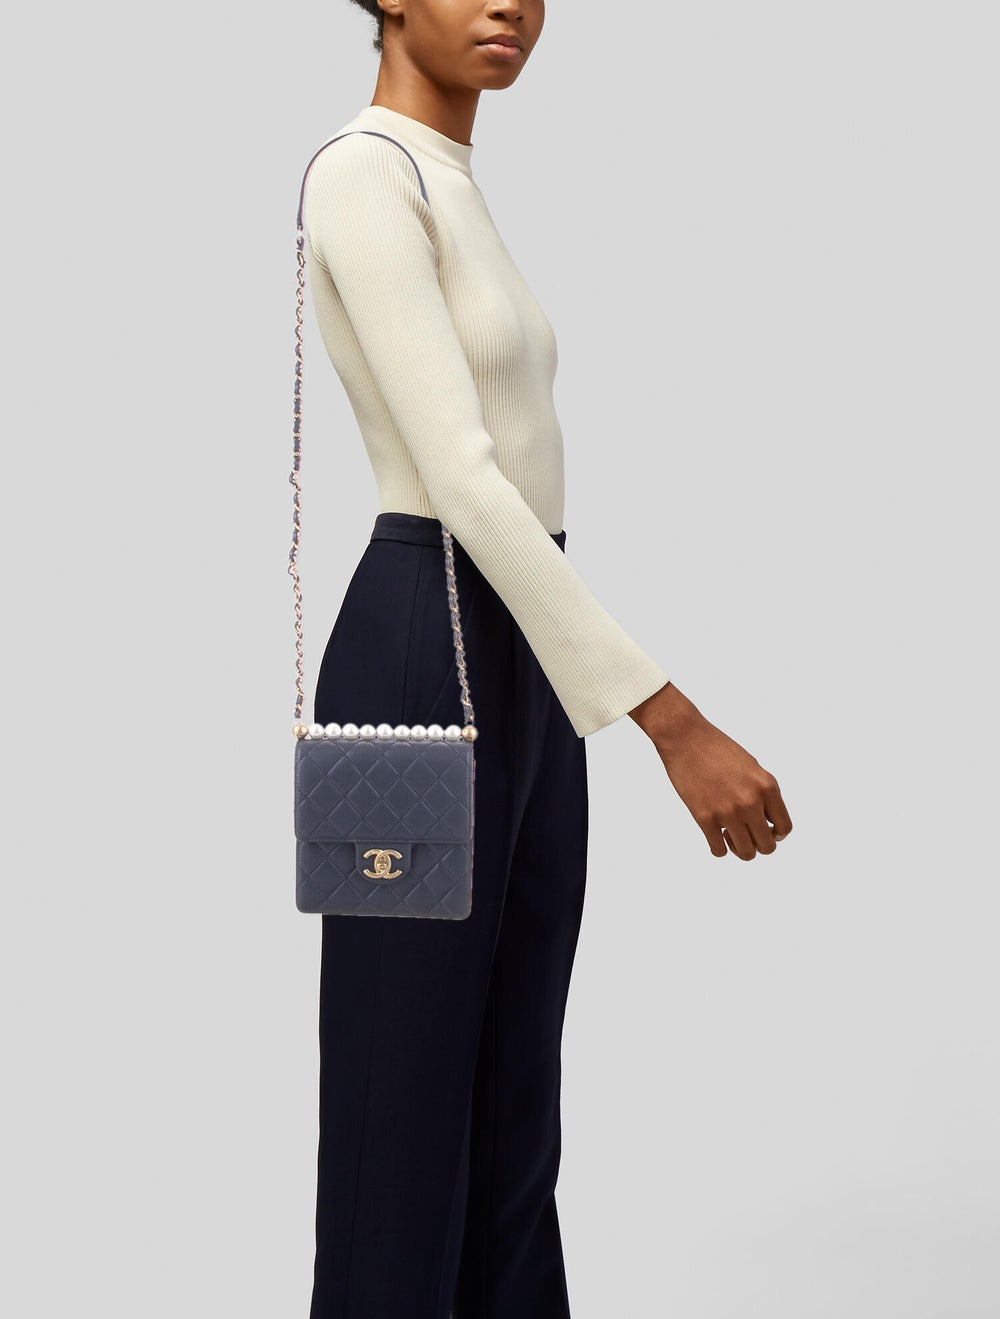 Chanel 2019 Small Chic Pearls Flap Bag Blue - image 2